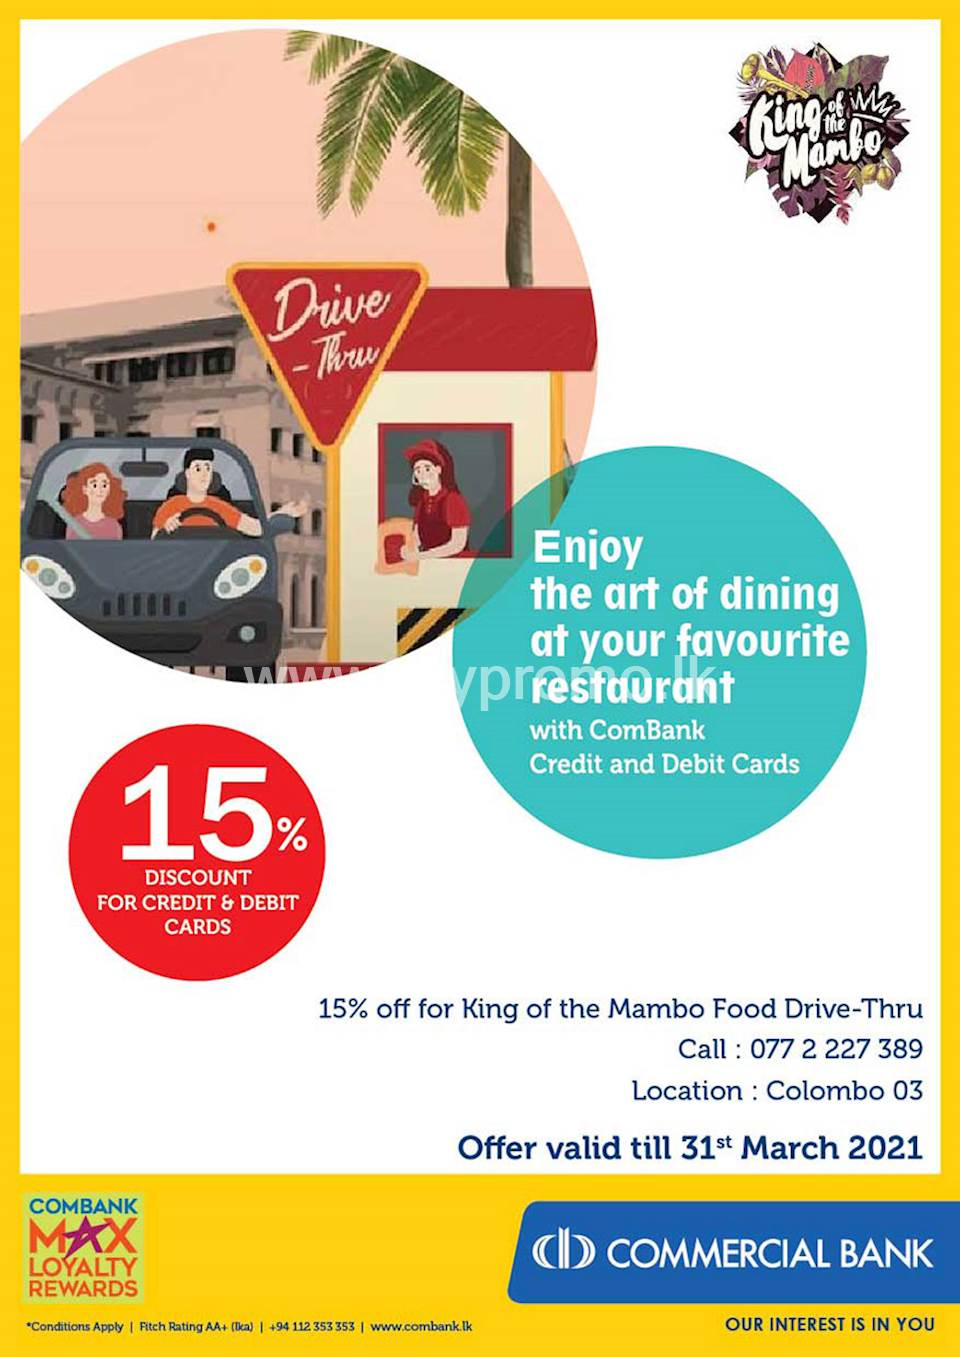 Enjoy 15% Discount for ComBank Credit and Debit Cards at King of the Mambo